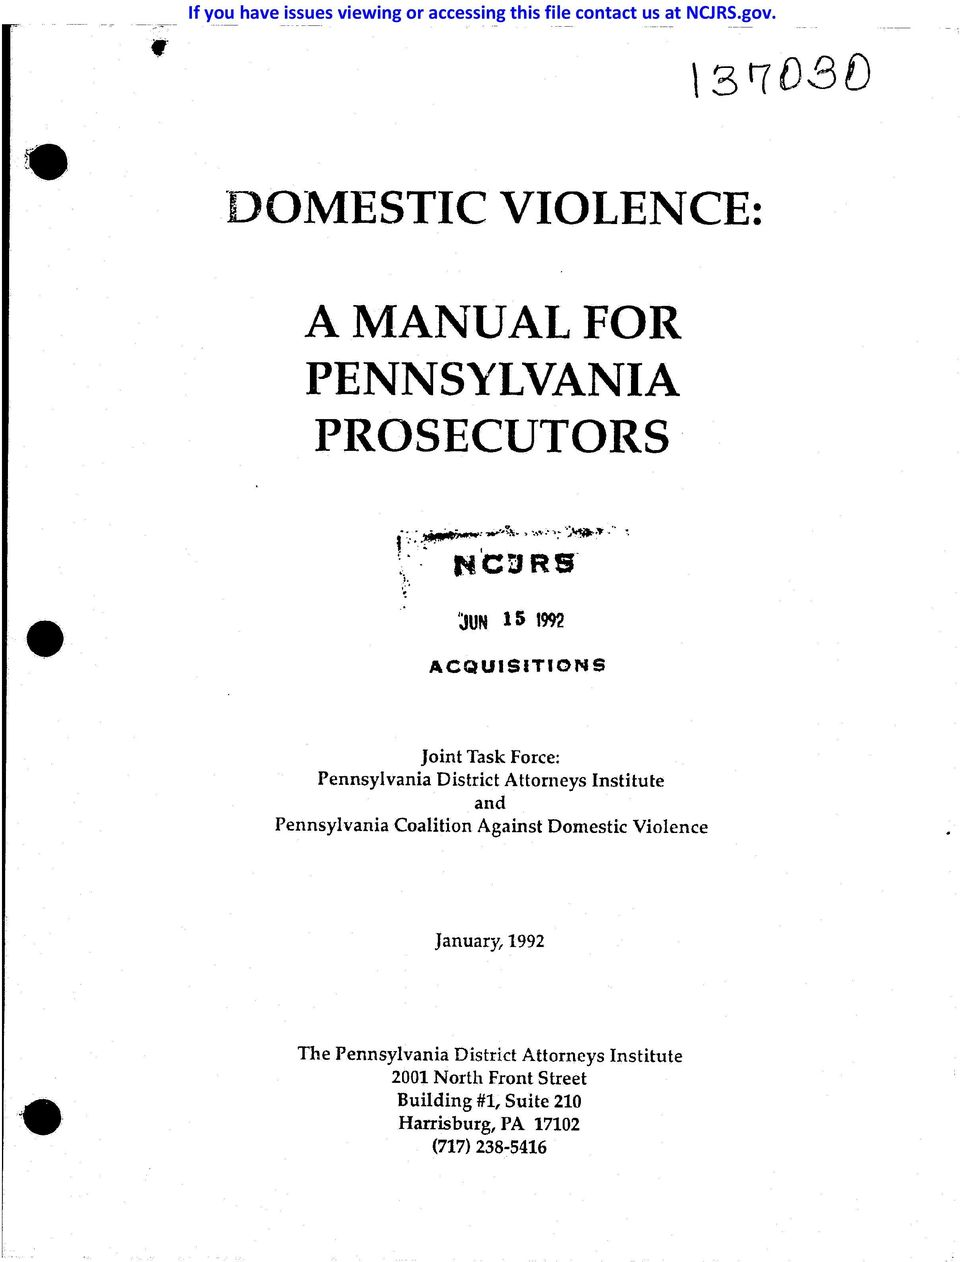 Pennsylvania District Attorneys Institute and Pennsylvania Coalition Against Domestic Violence January, 1992